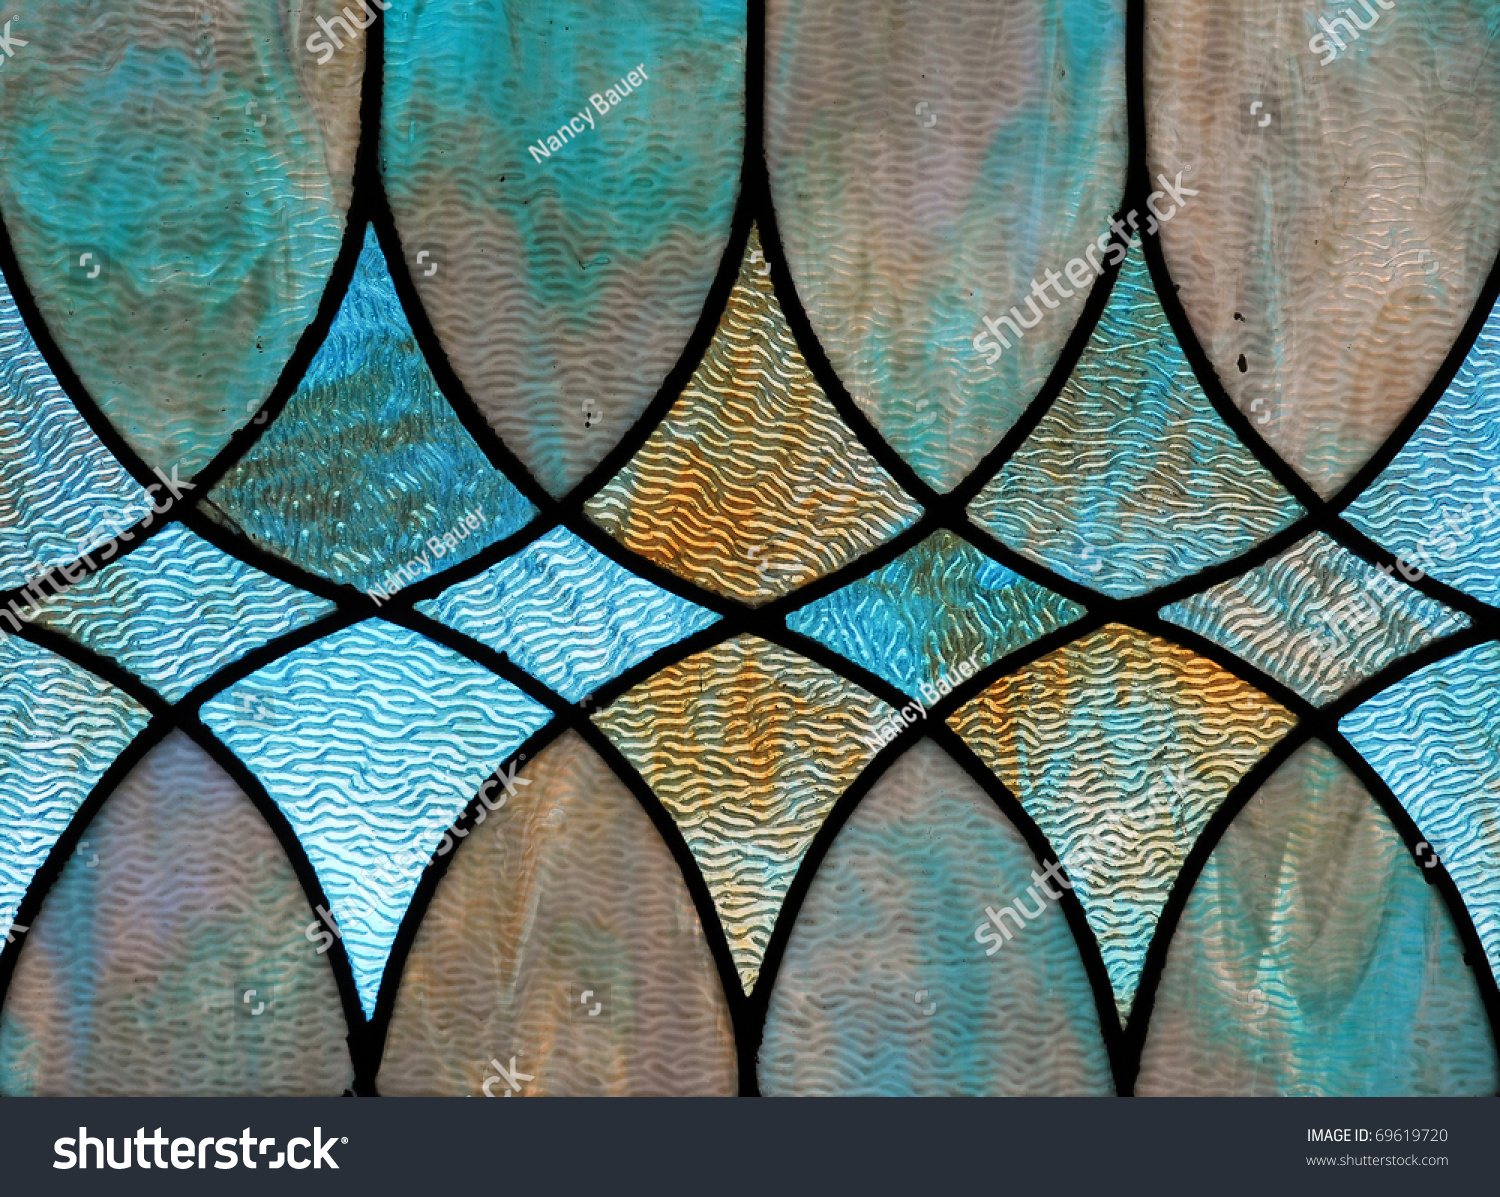 Glass window design - Design Detail Of Stained Glass Window